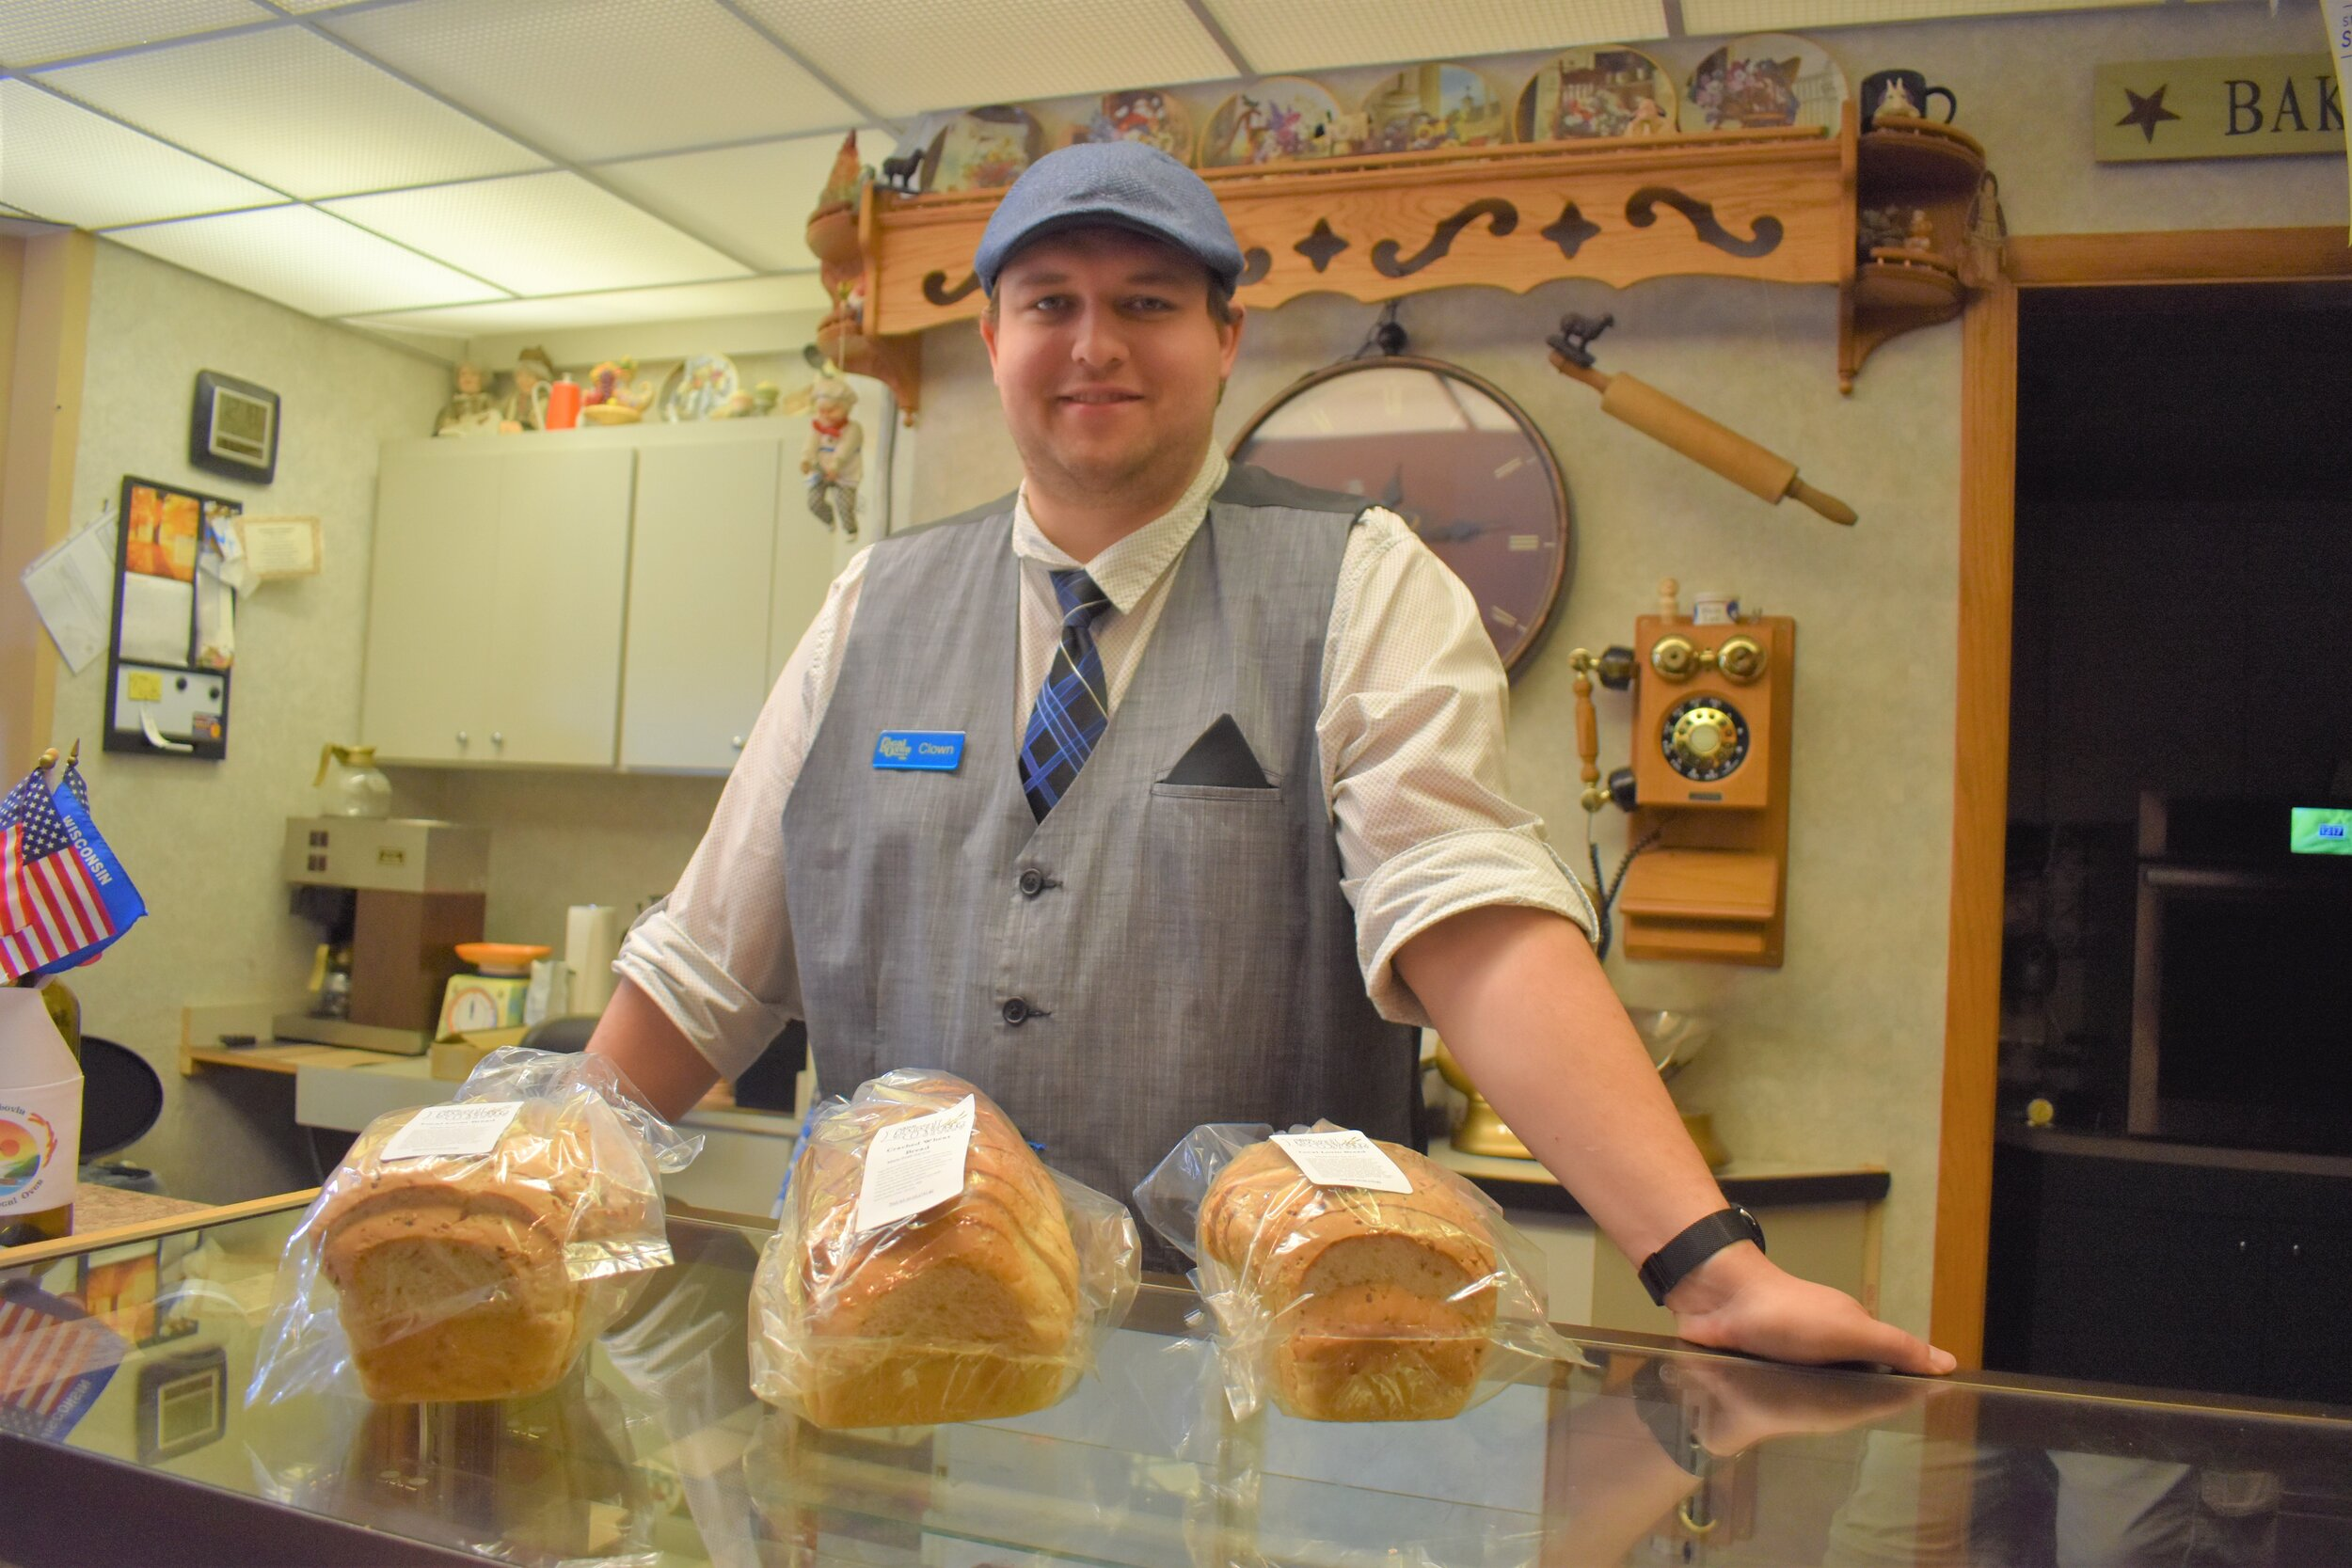 Joe Cerven with a few of the bakery's breads.